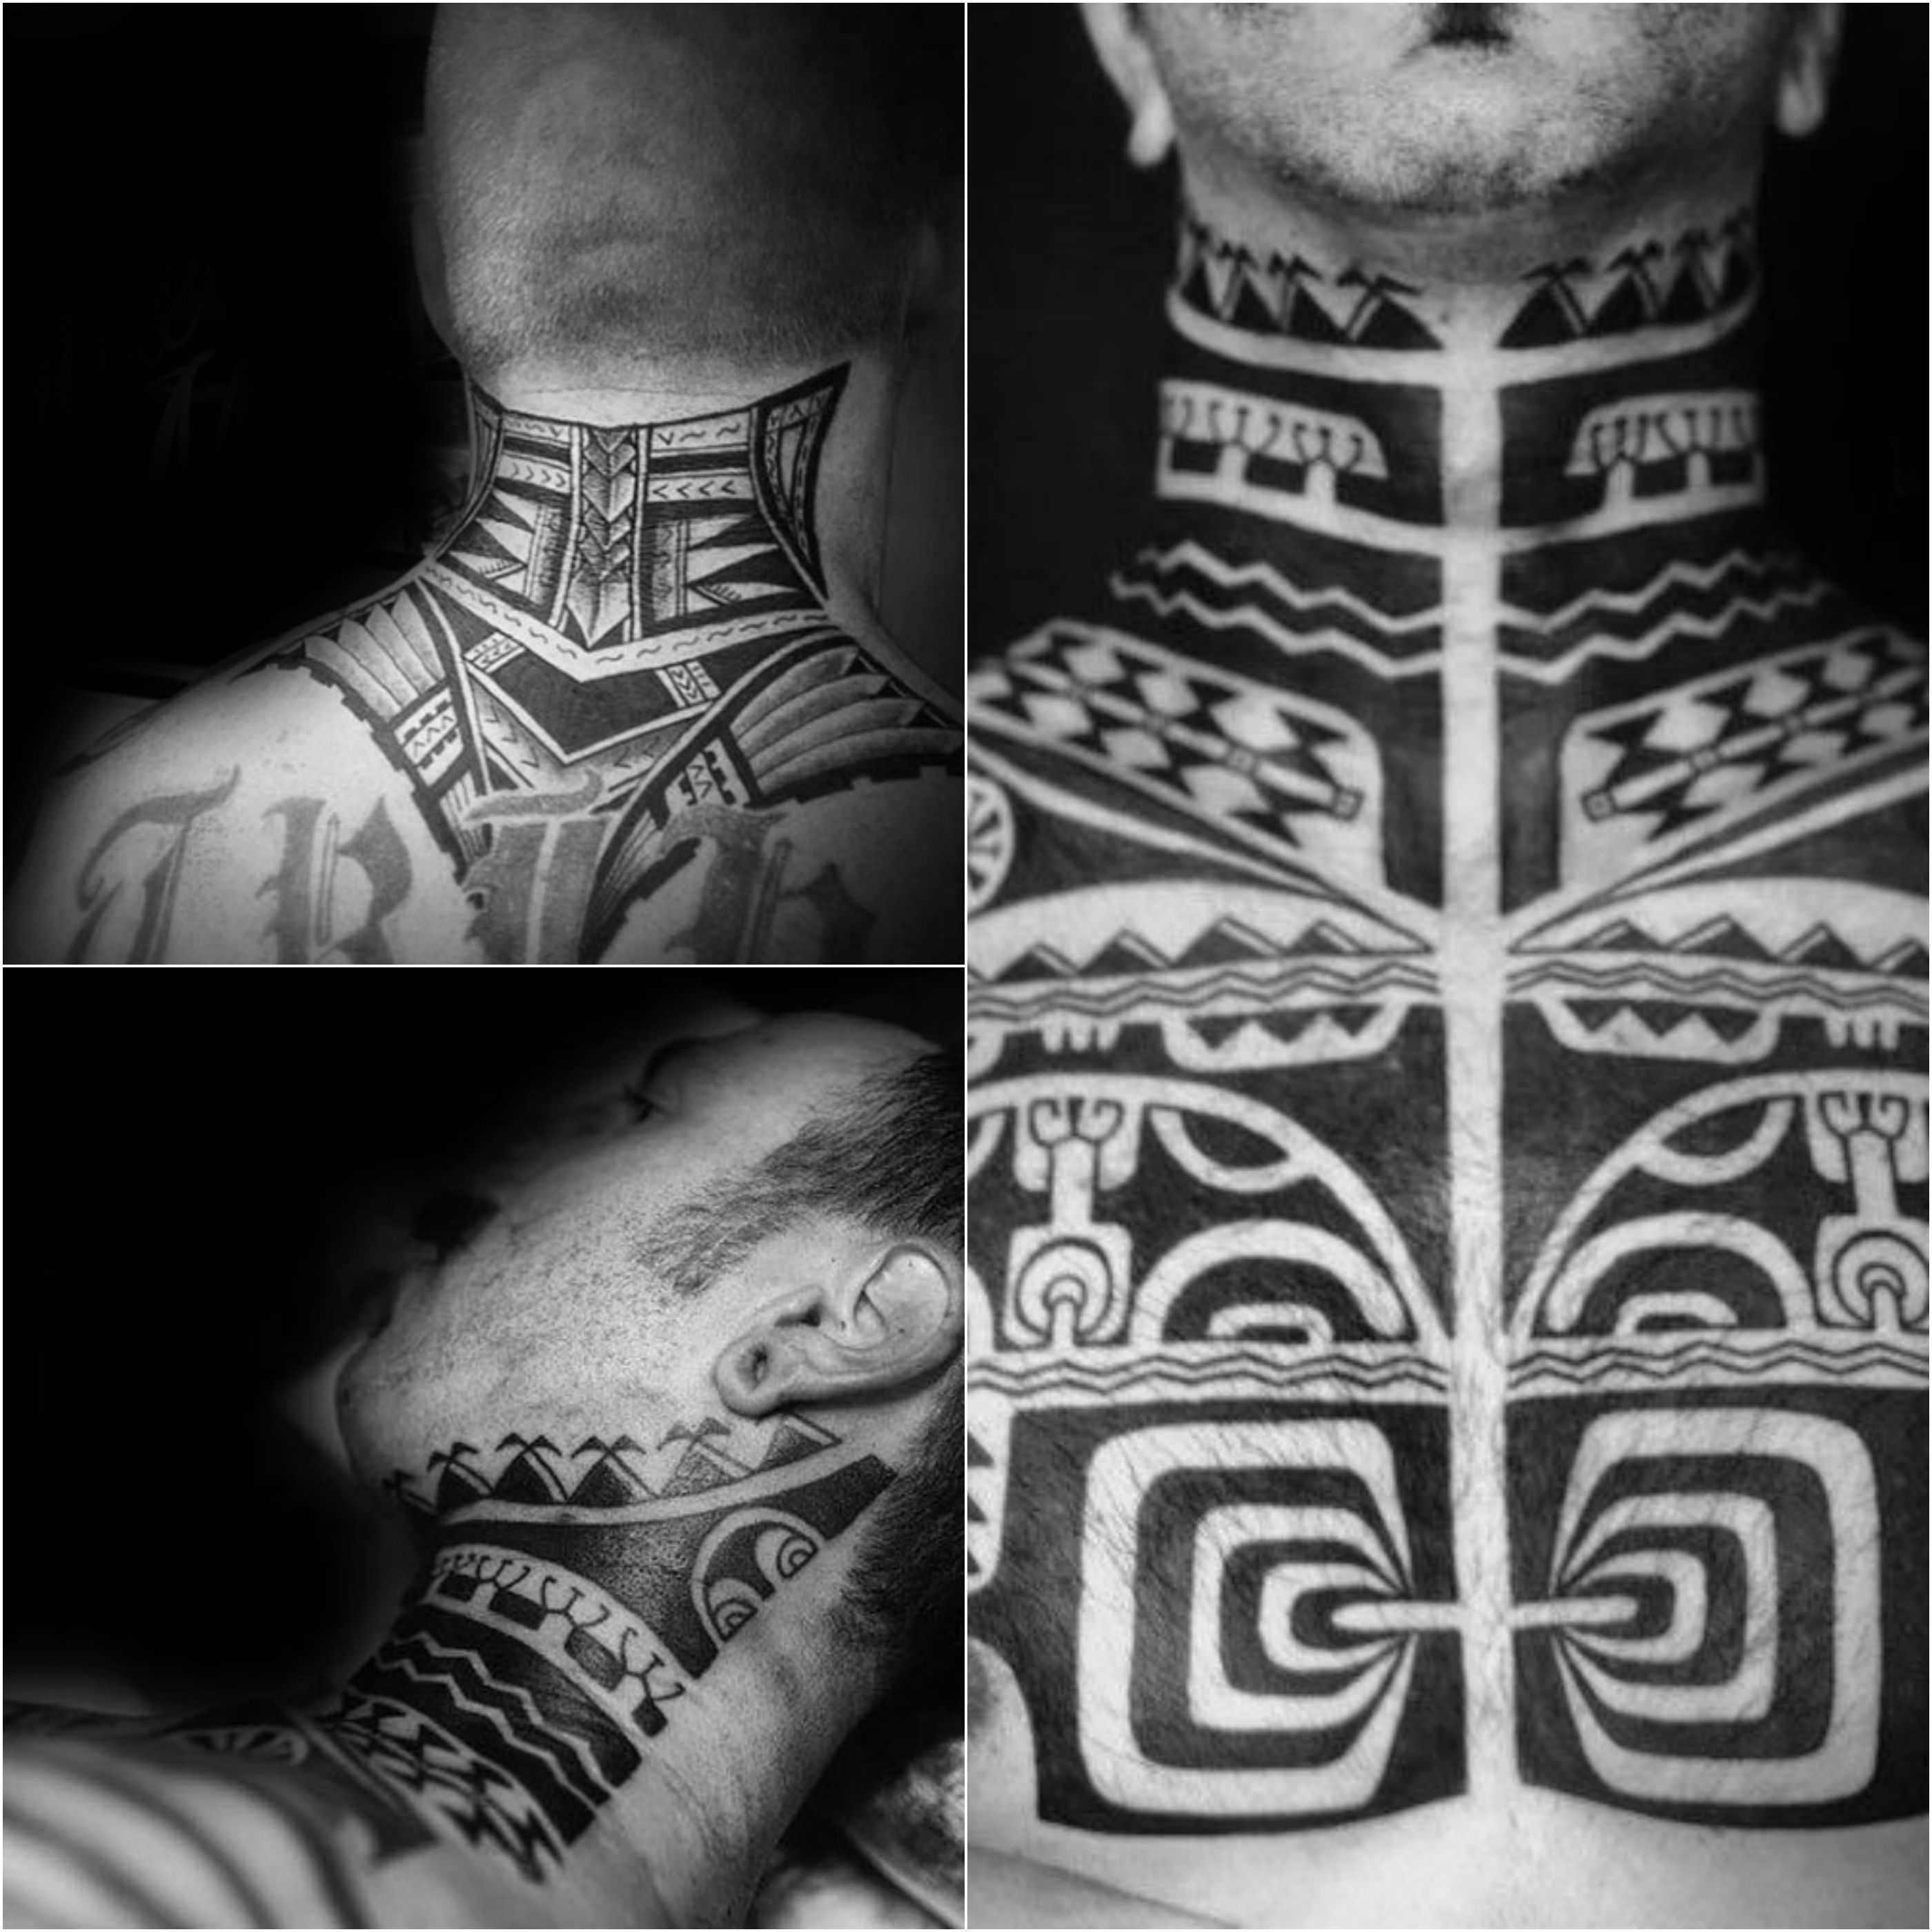 100 Best Neck Tattoo Designs Creative Neck Tattoo Ideas Gallery Tattoos For Guys Neck Tattoo For Guys Best Neck Tattoos